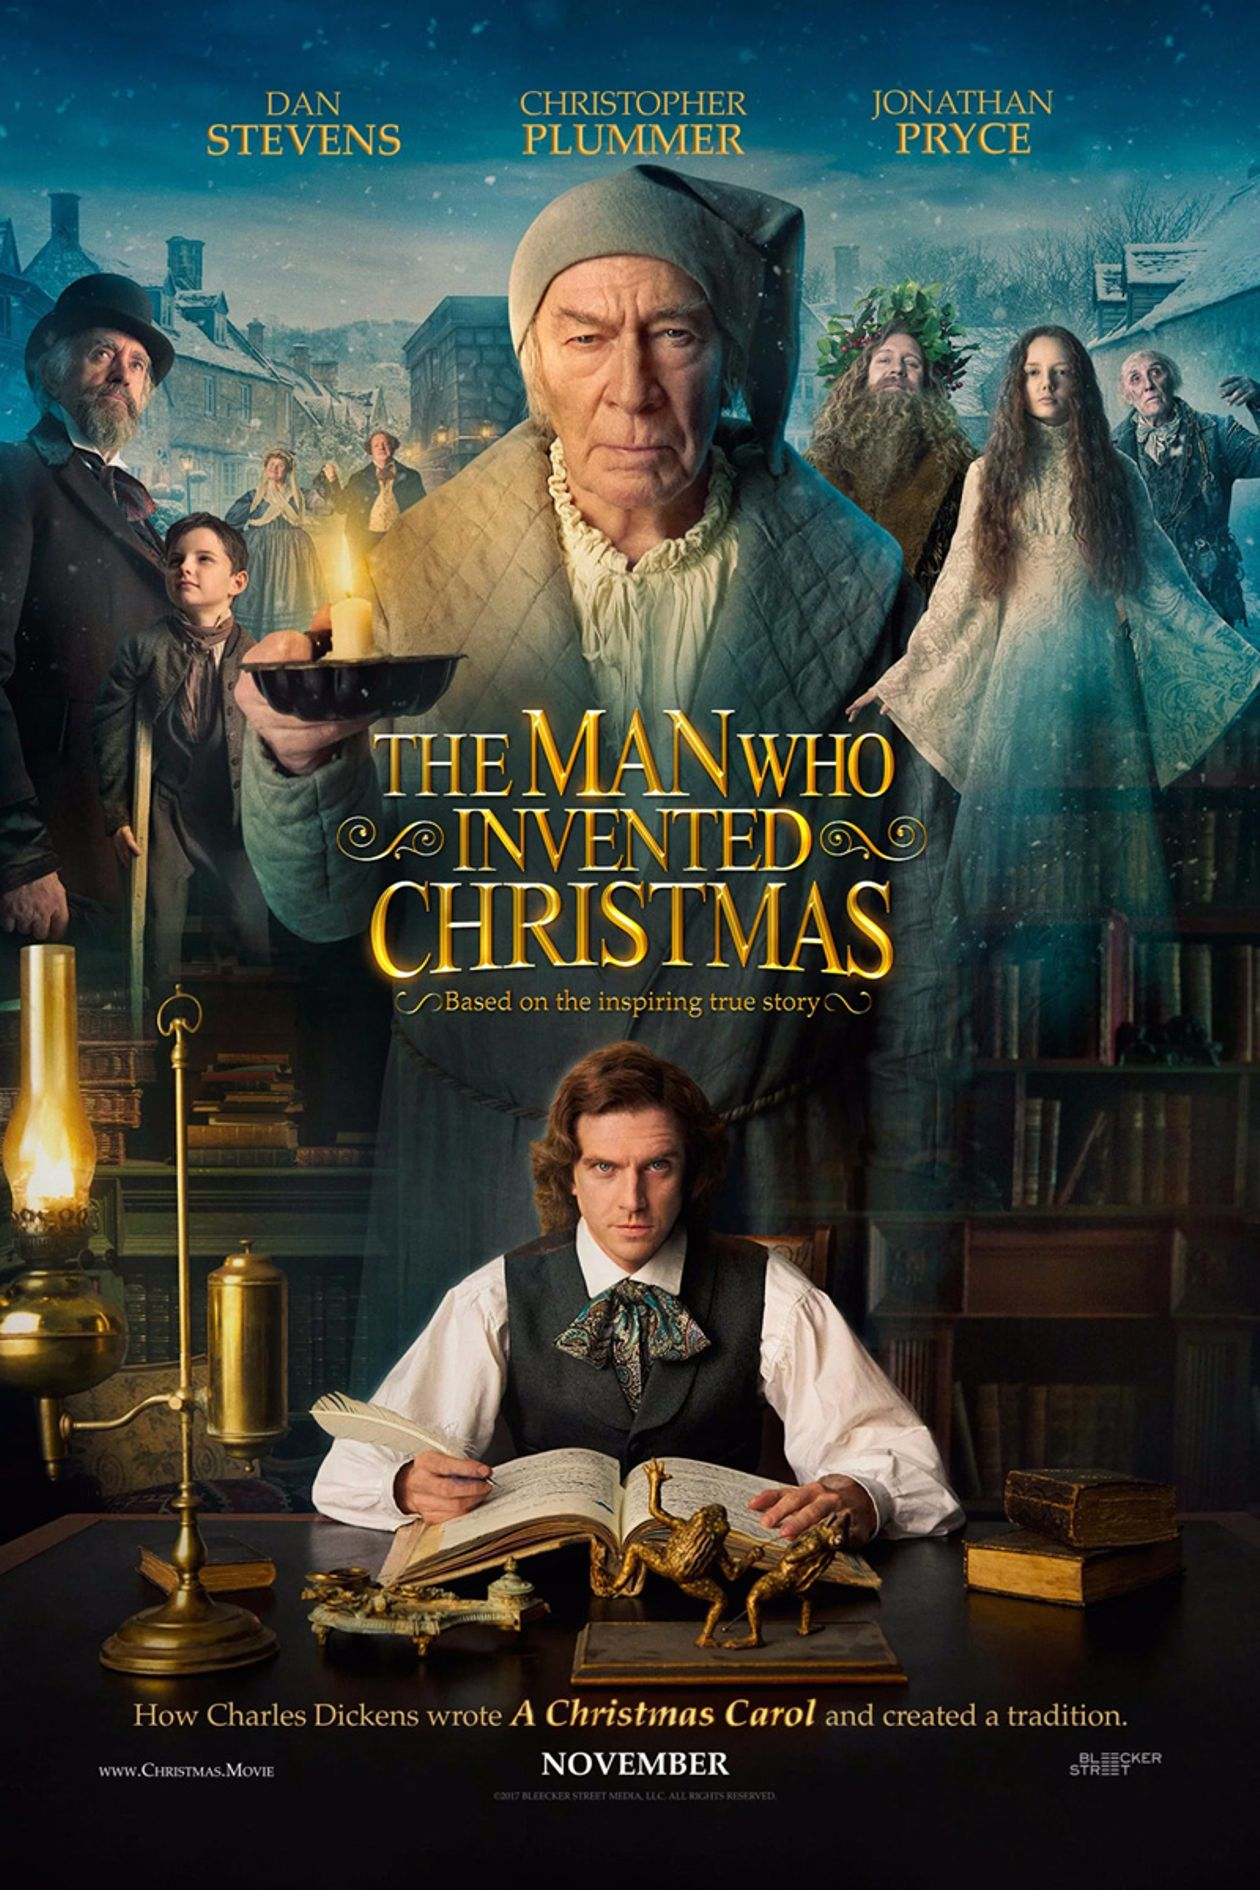 The Man Who Invented Christmas - Official Movie Site